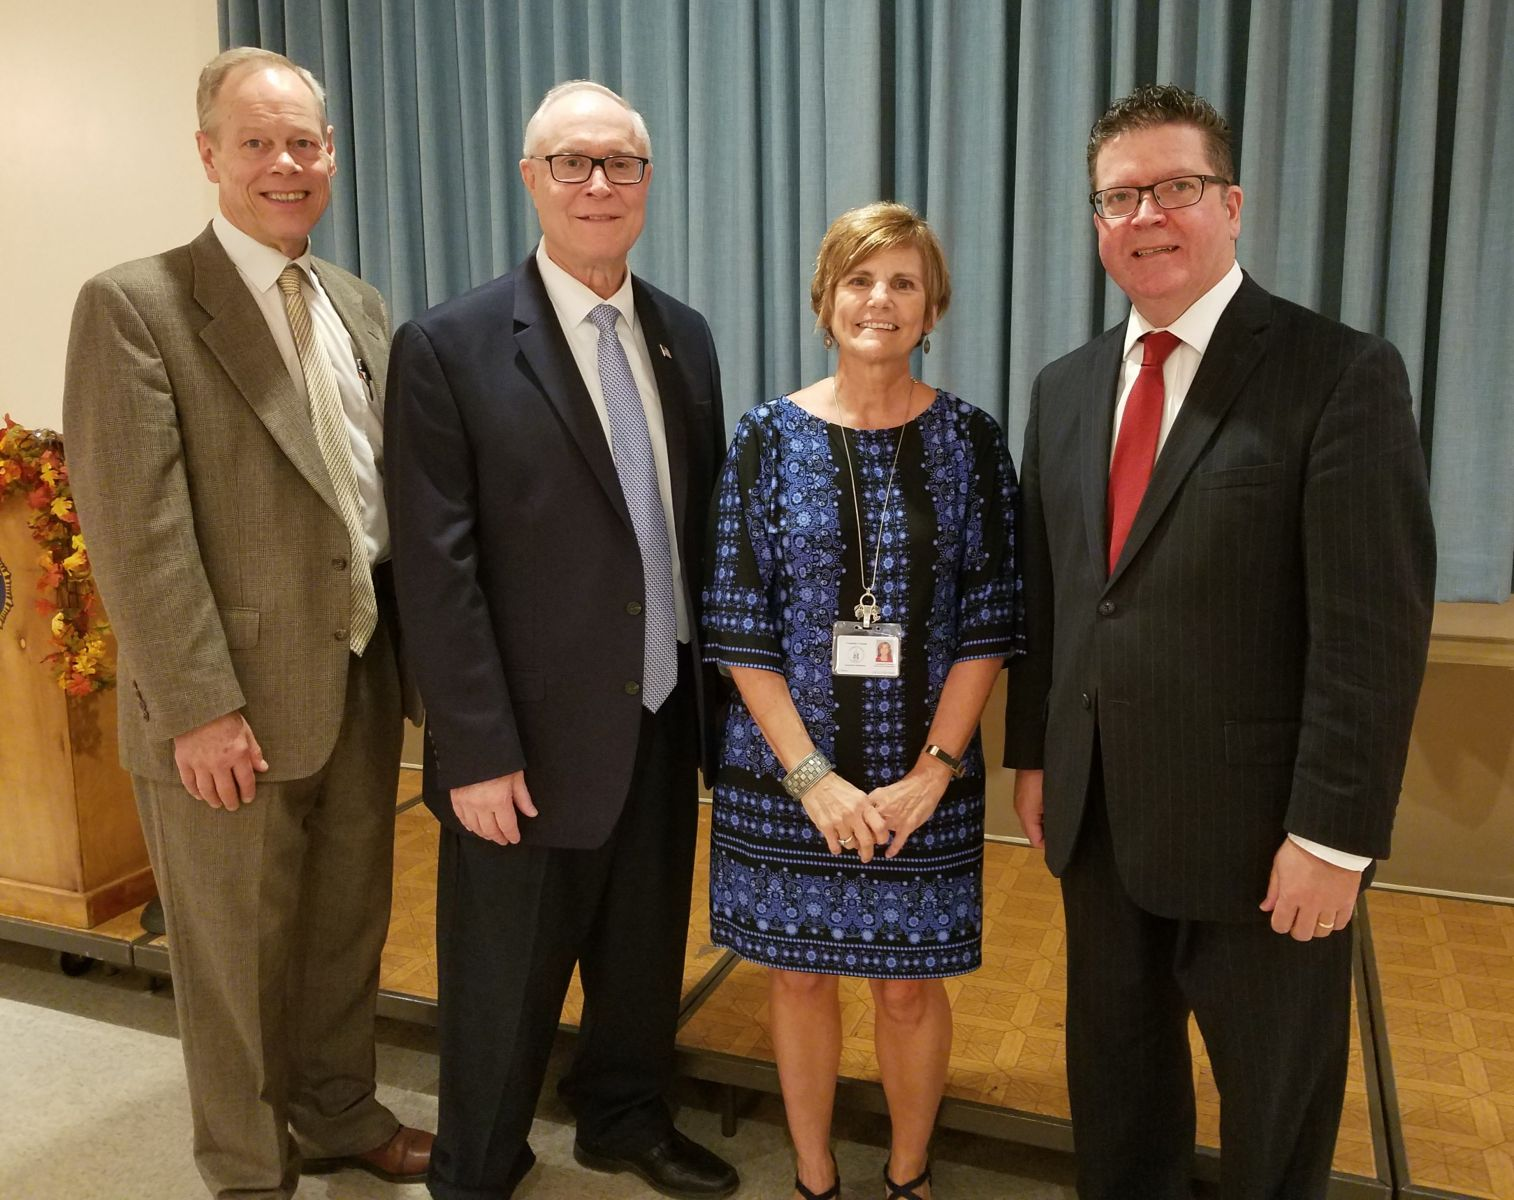 35 Years of Service Pictured above (left to right): Commissioner Bob Ziobrowski, Commissioner Bob Thomas, Lucinda (Sue) Grove, Commissioner Chairman Dave Keller